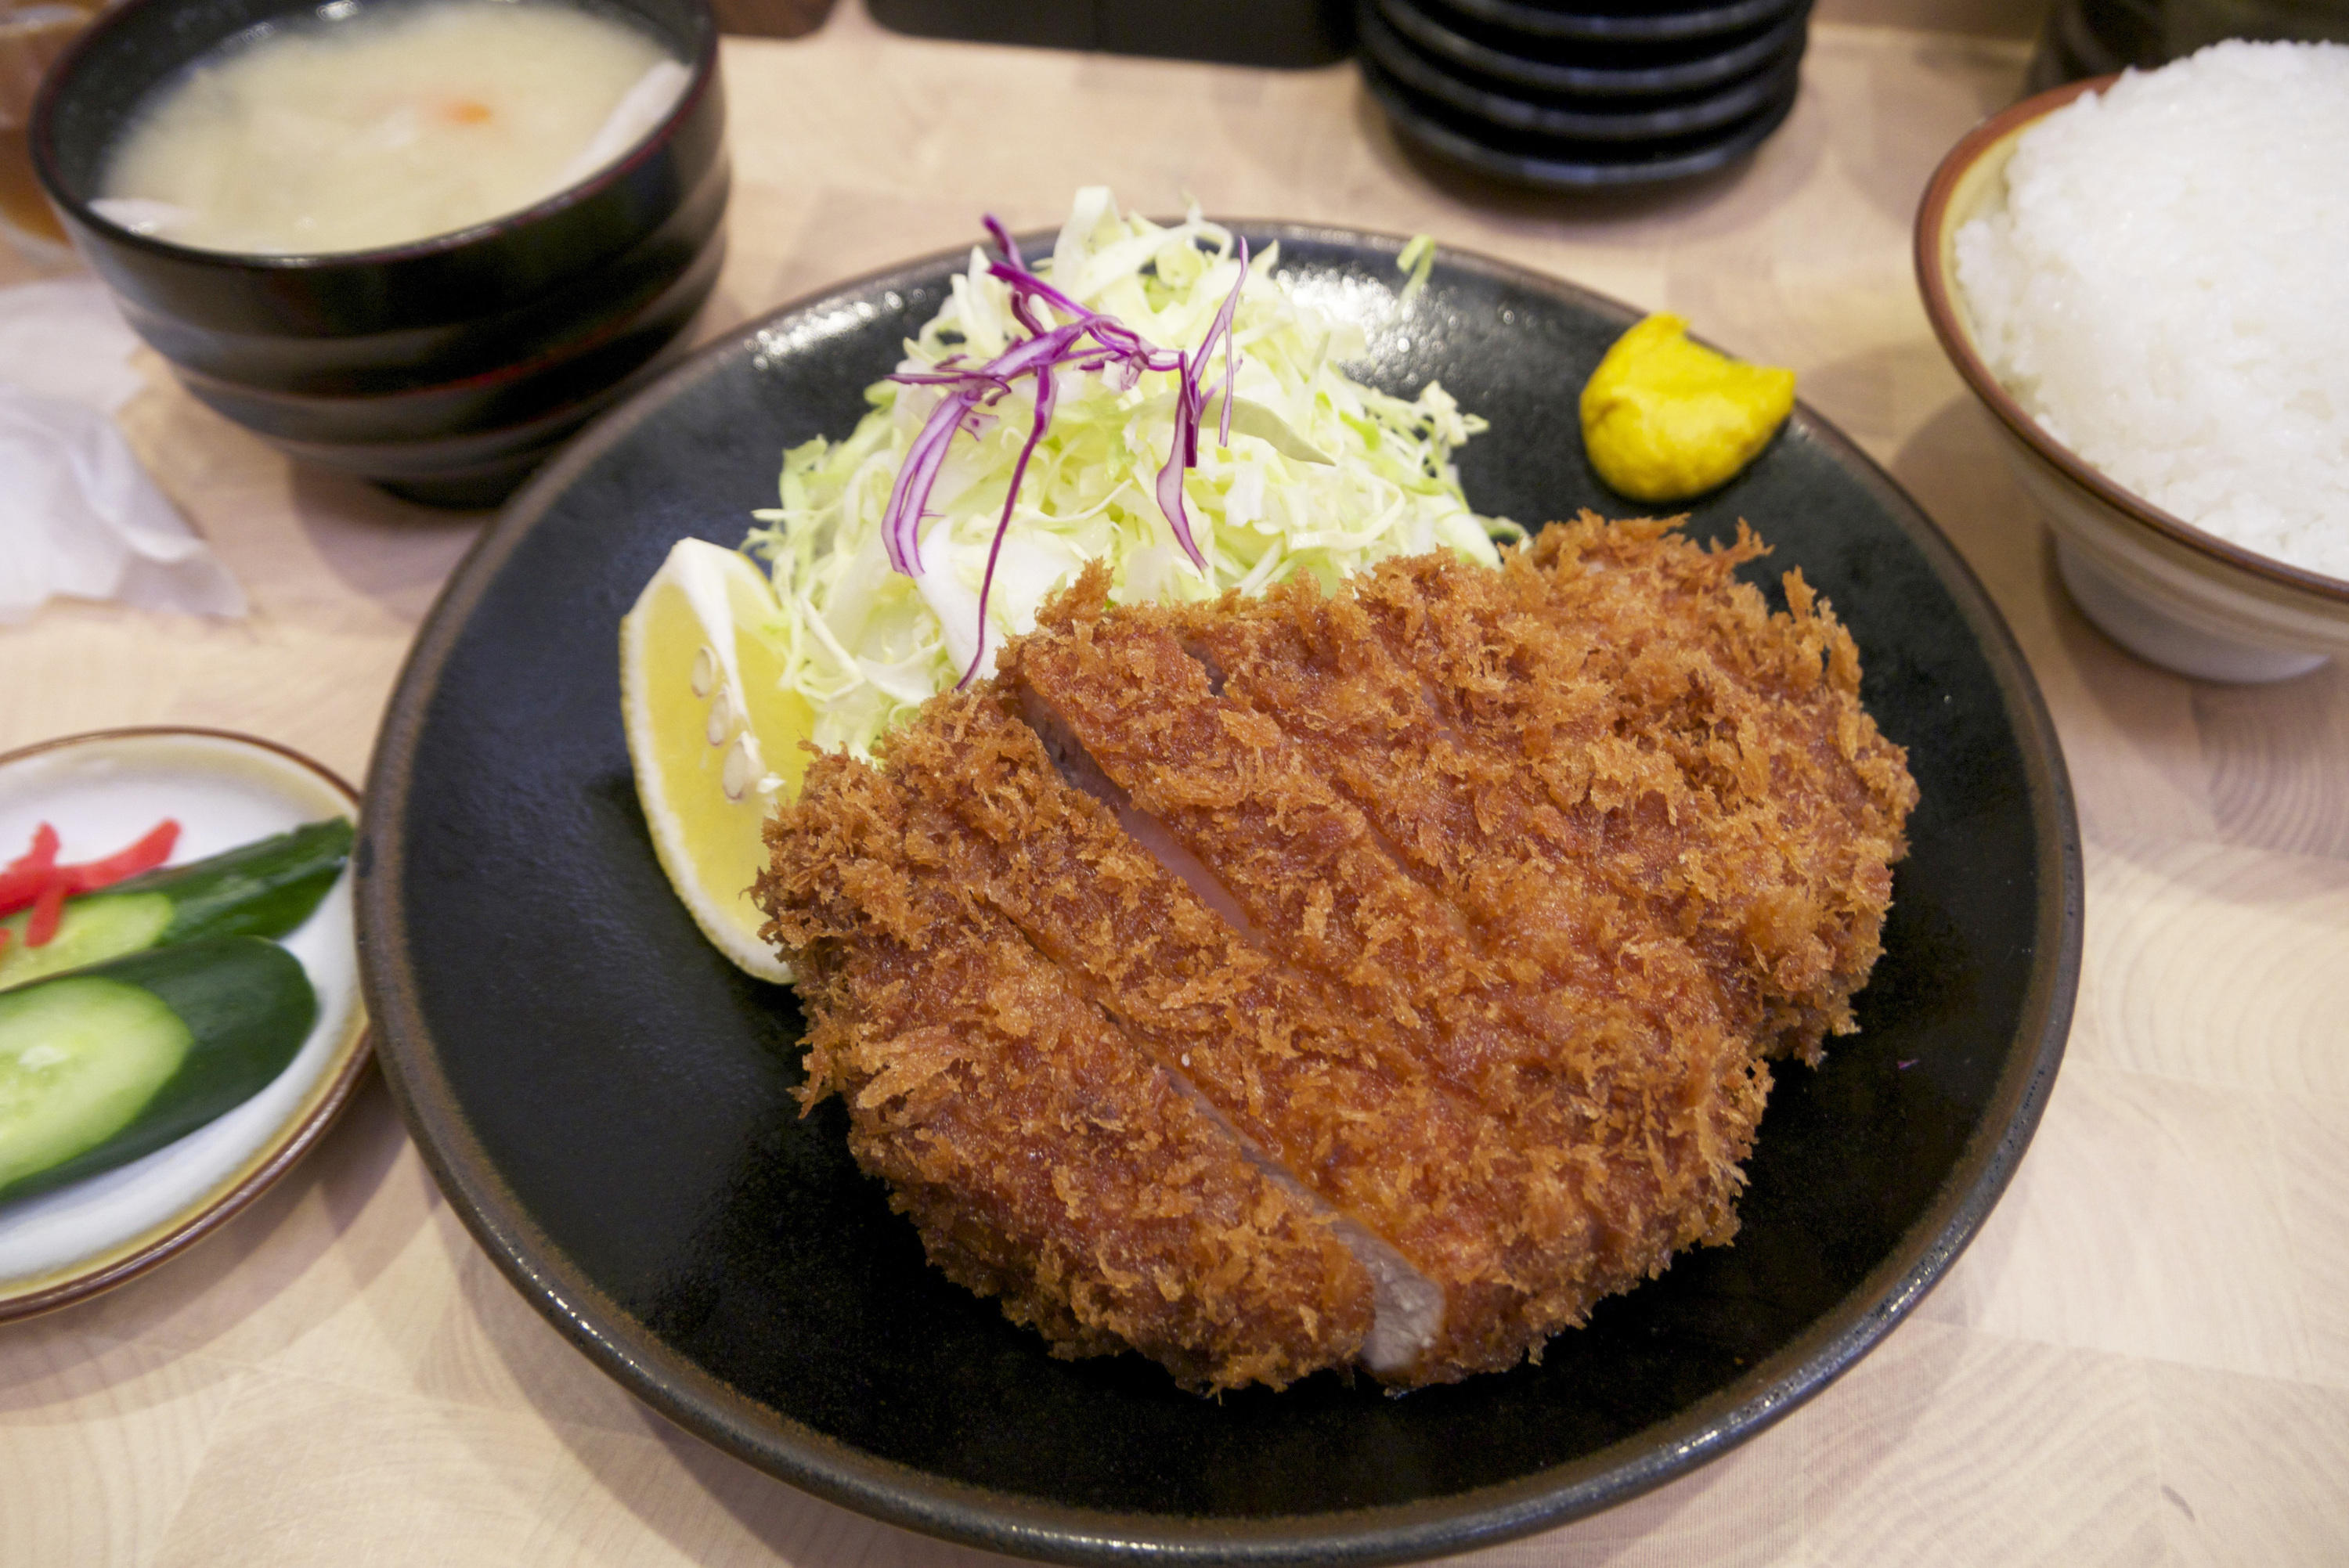 Bite into healthy pork at Aoki